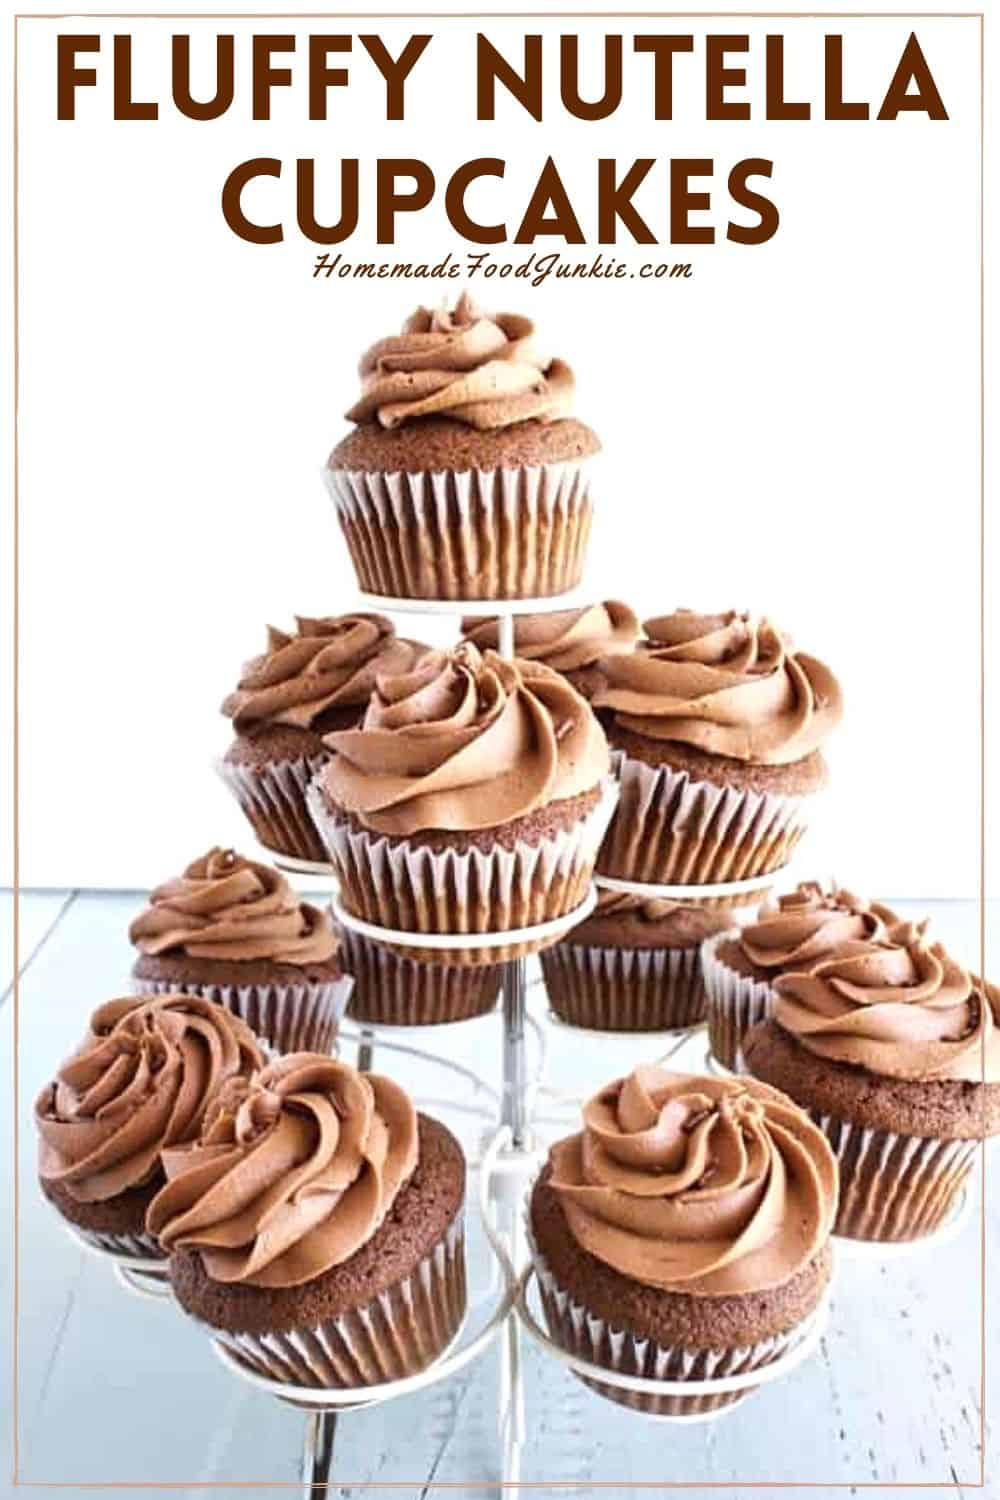 Fluffy nutella cupcakes-pin image